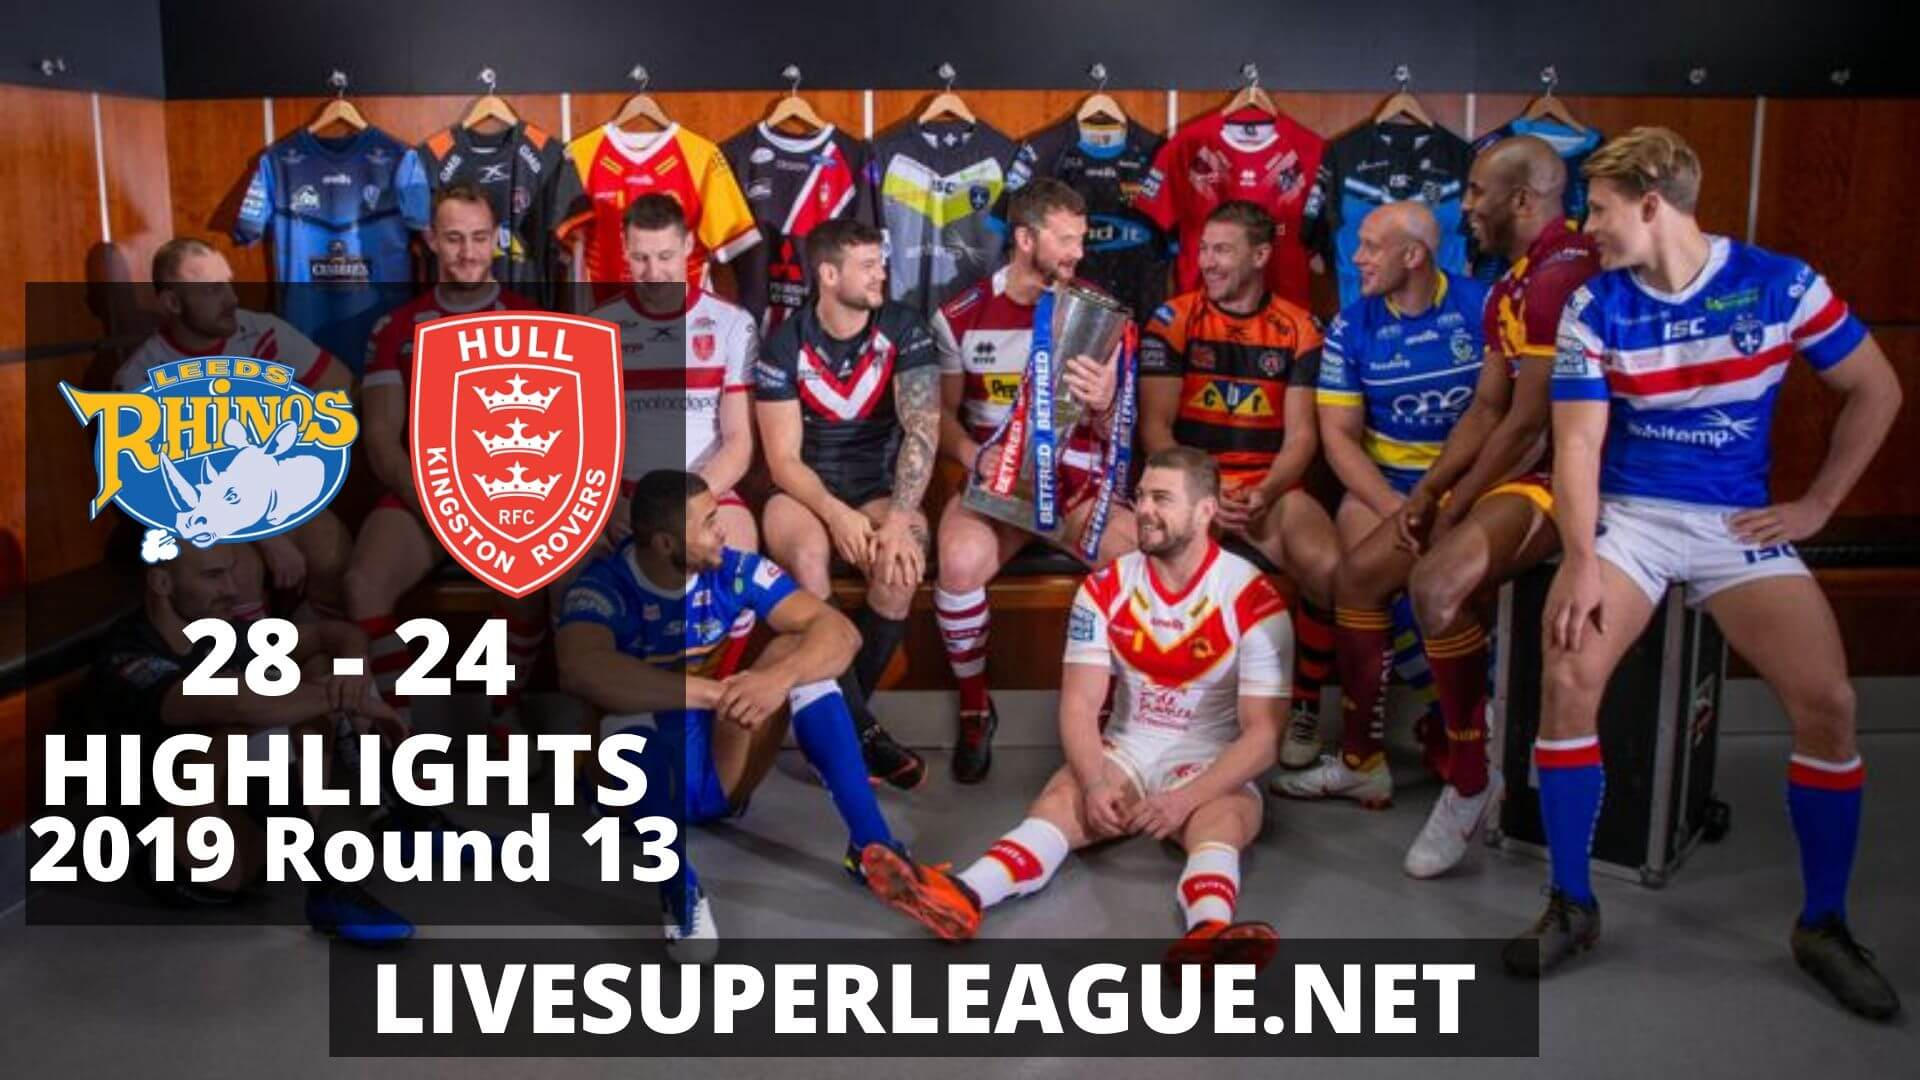 Leeds Rhinos Vs Hull Kingston Rovers Highlights 2019 Round 13